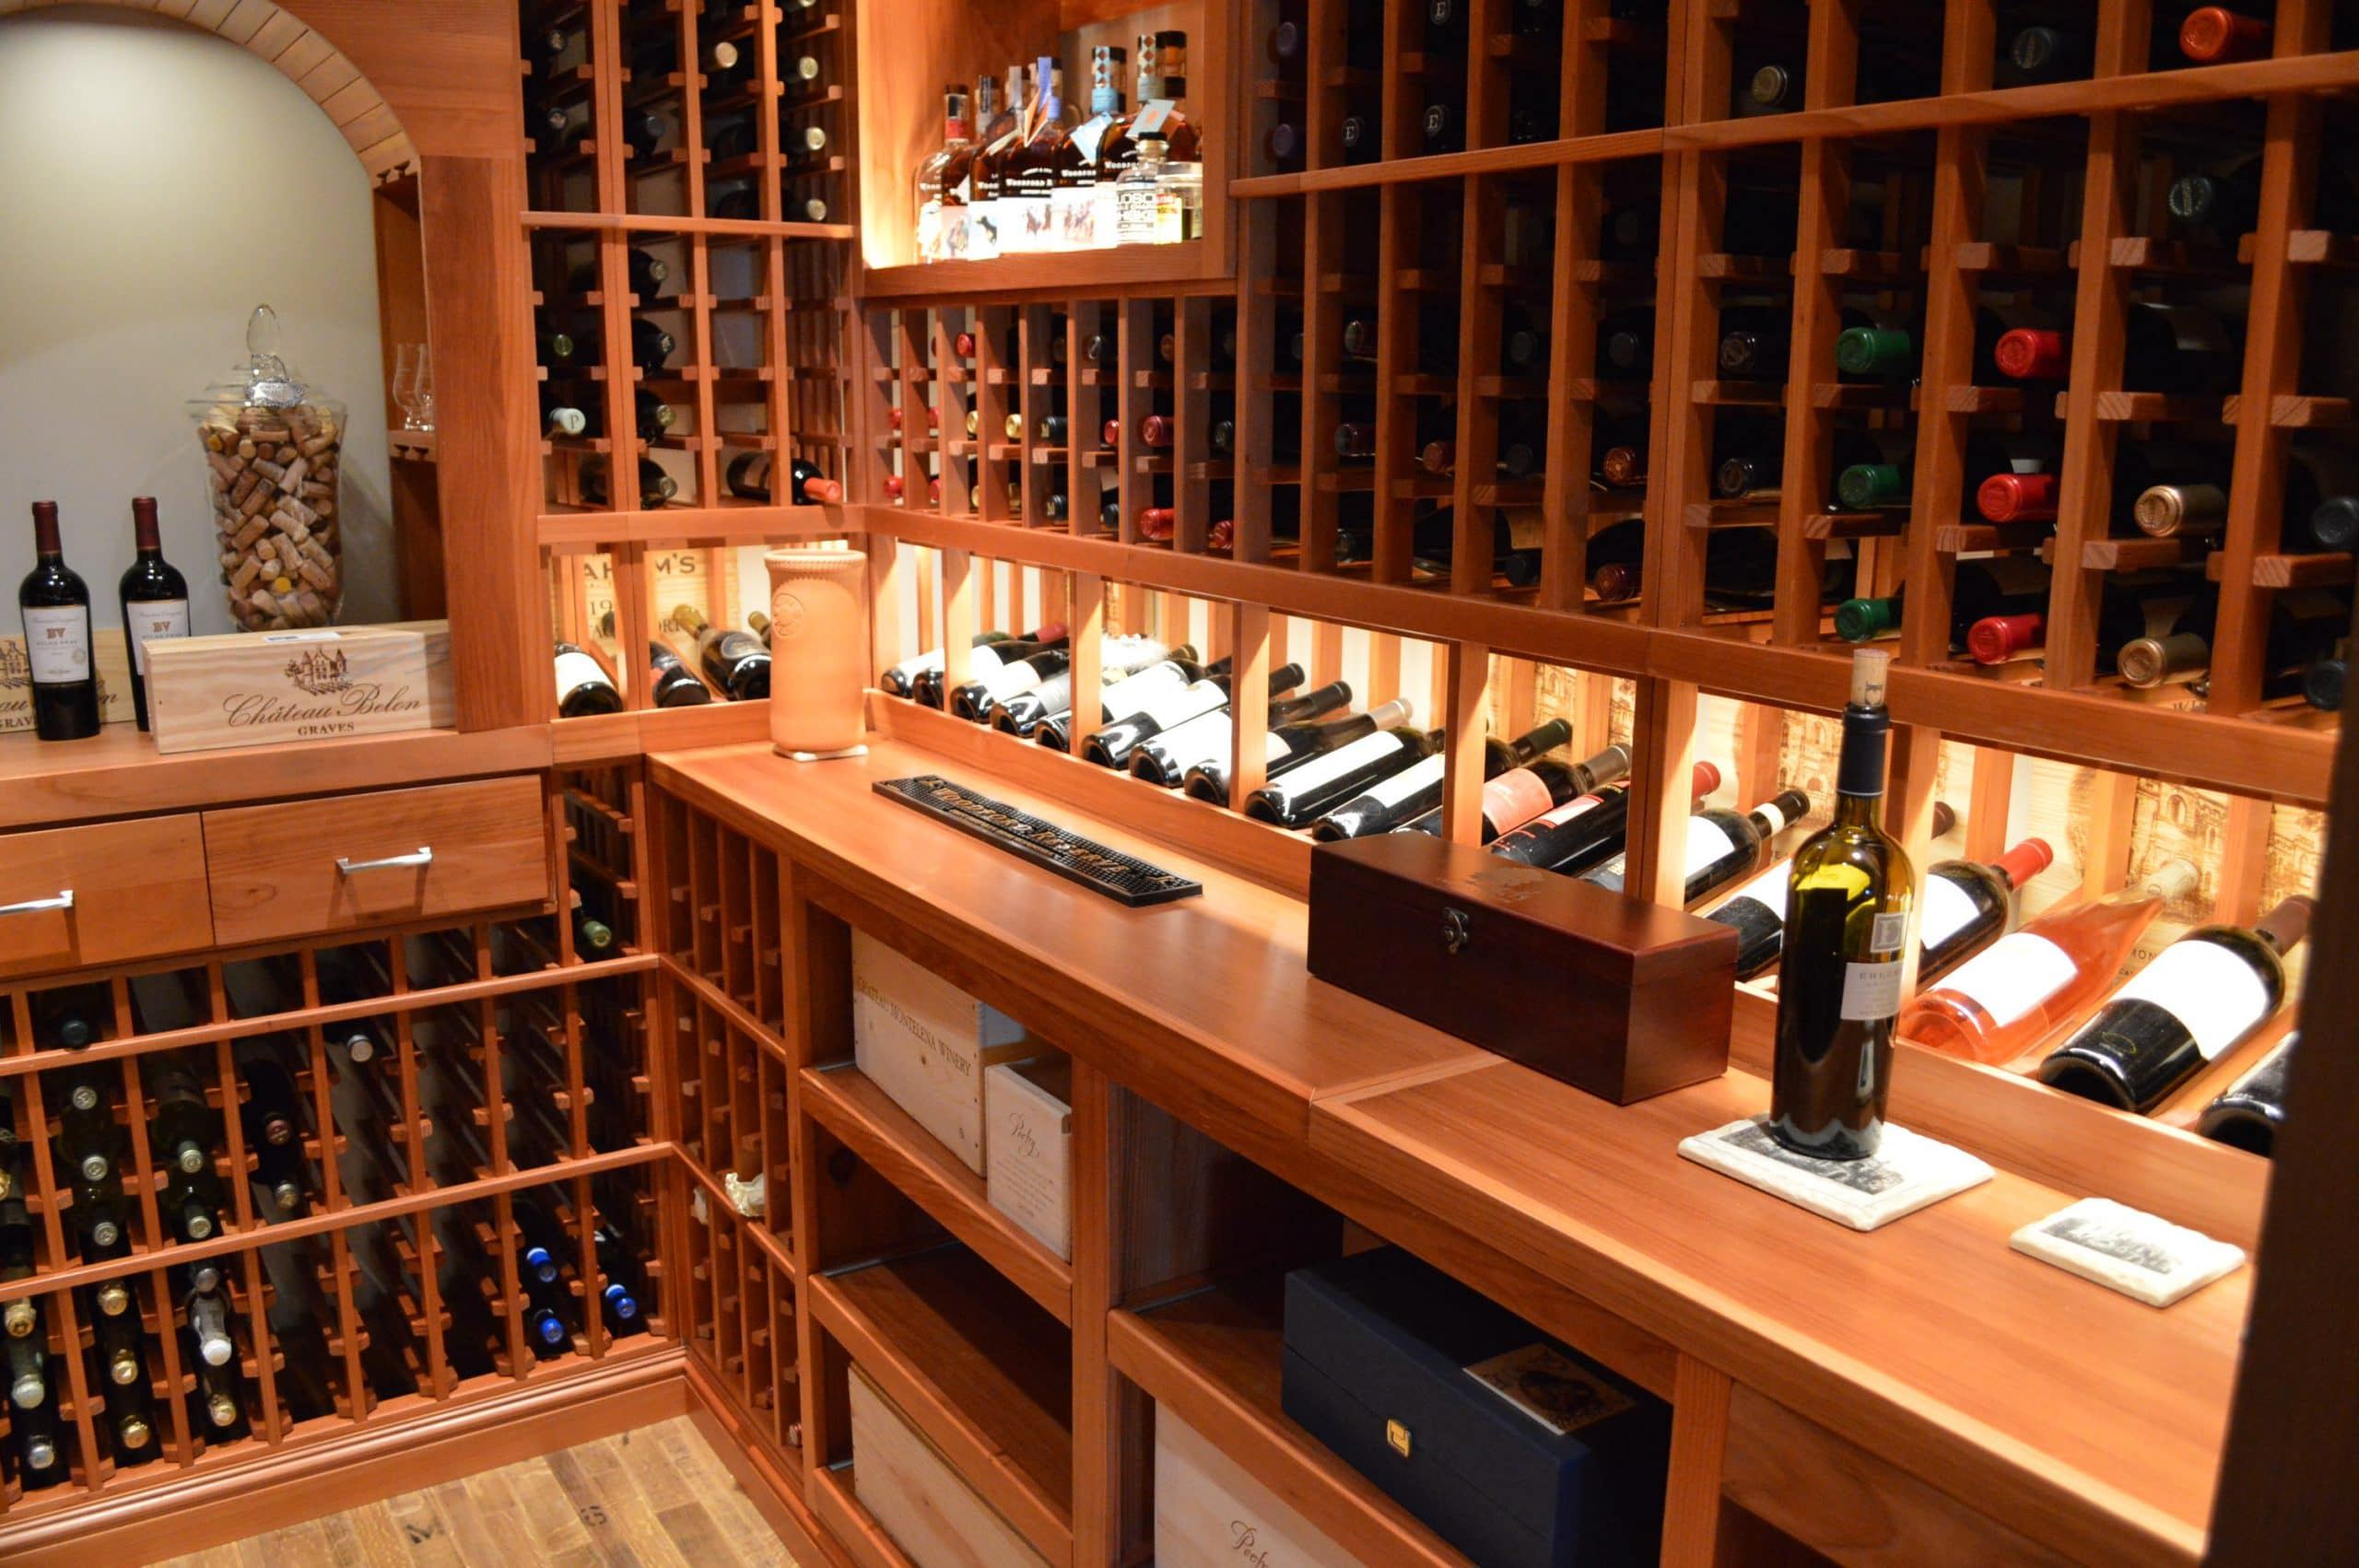 Click for a larger image! & Home Wine Cellar Construction Project in San Francisco